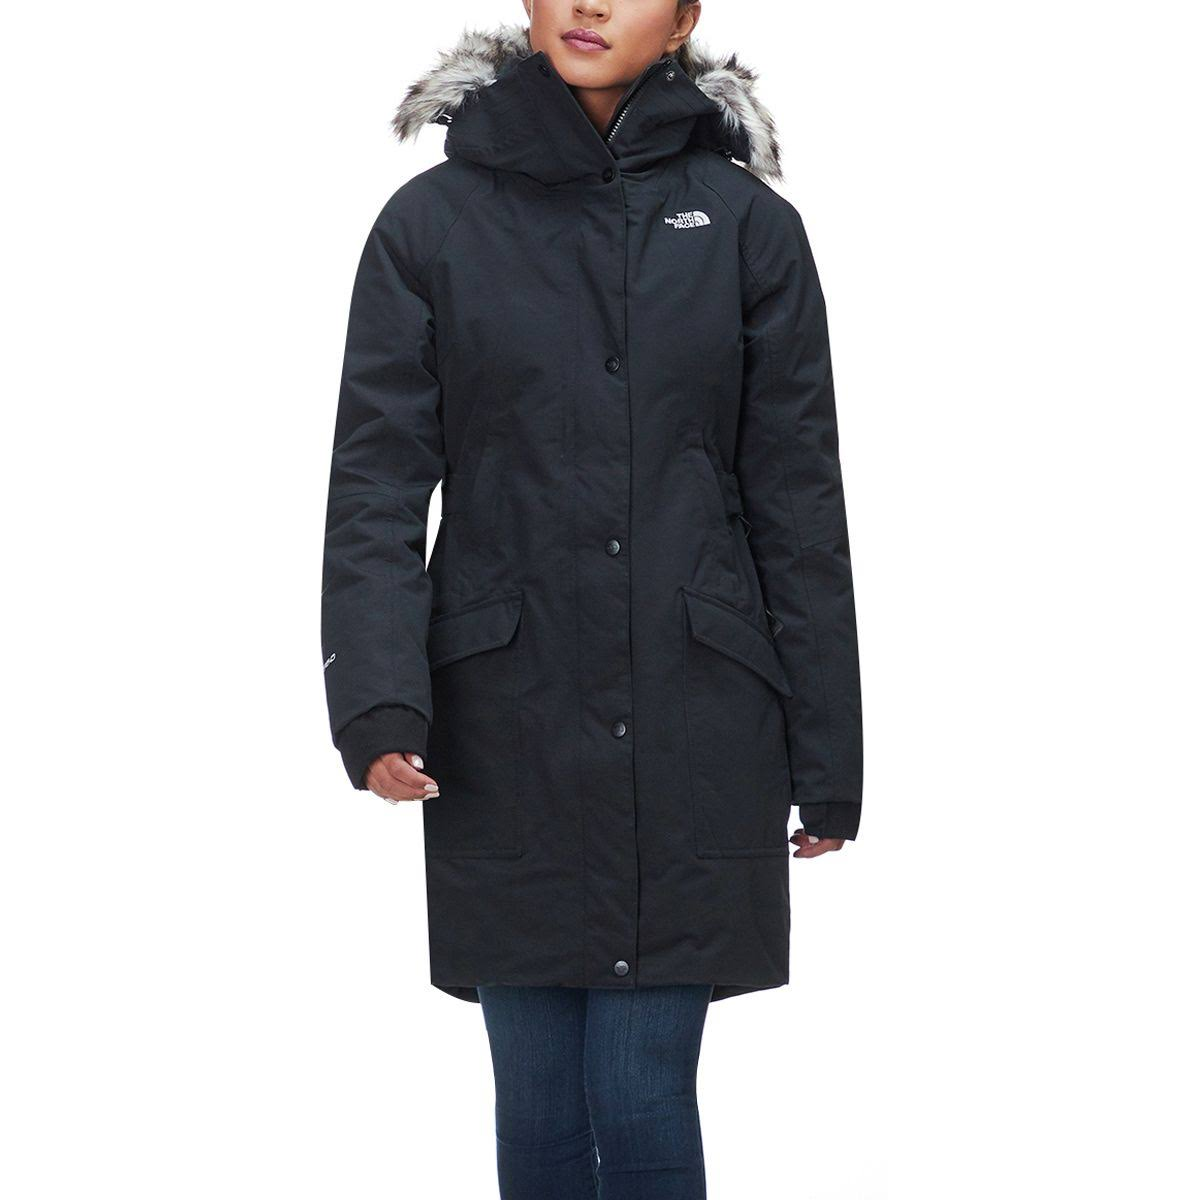 Tnf Boroughs Black Xl Face Mujeres Parka The Outer North wZqtYt